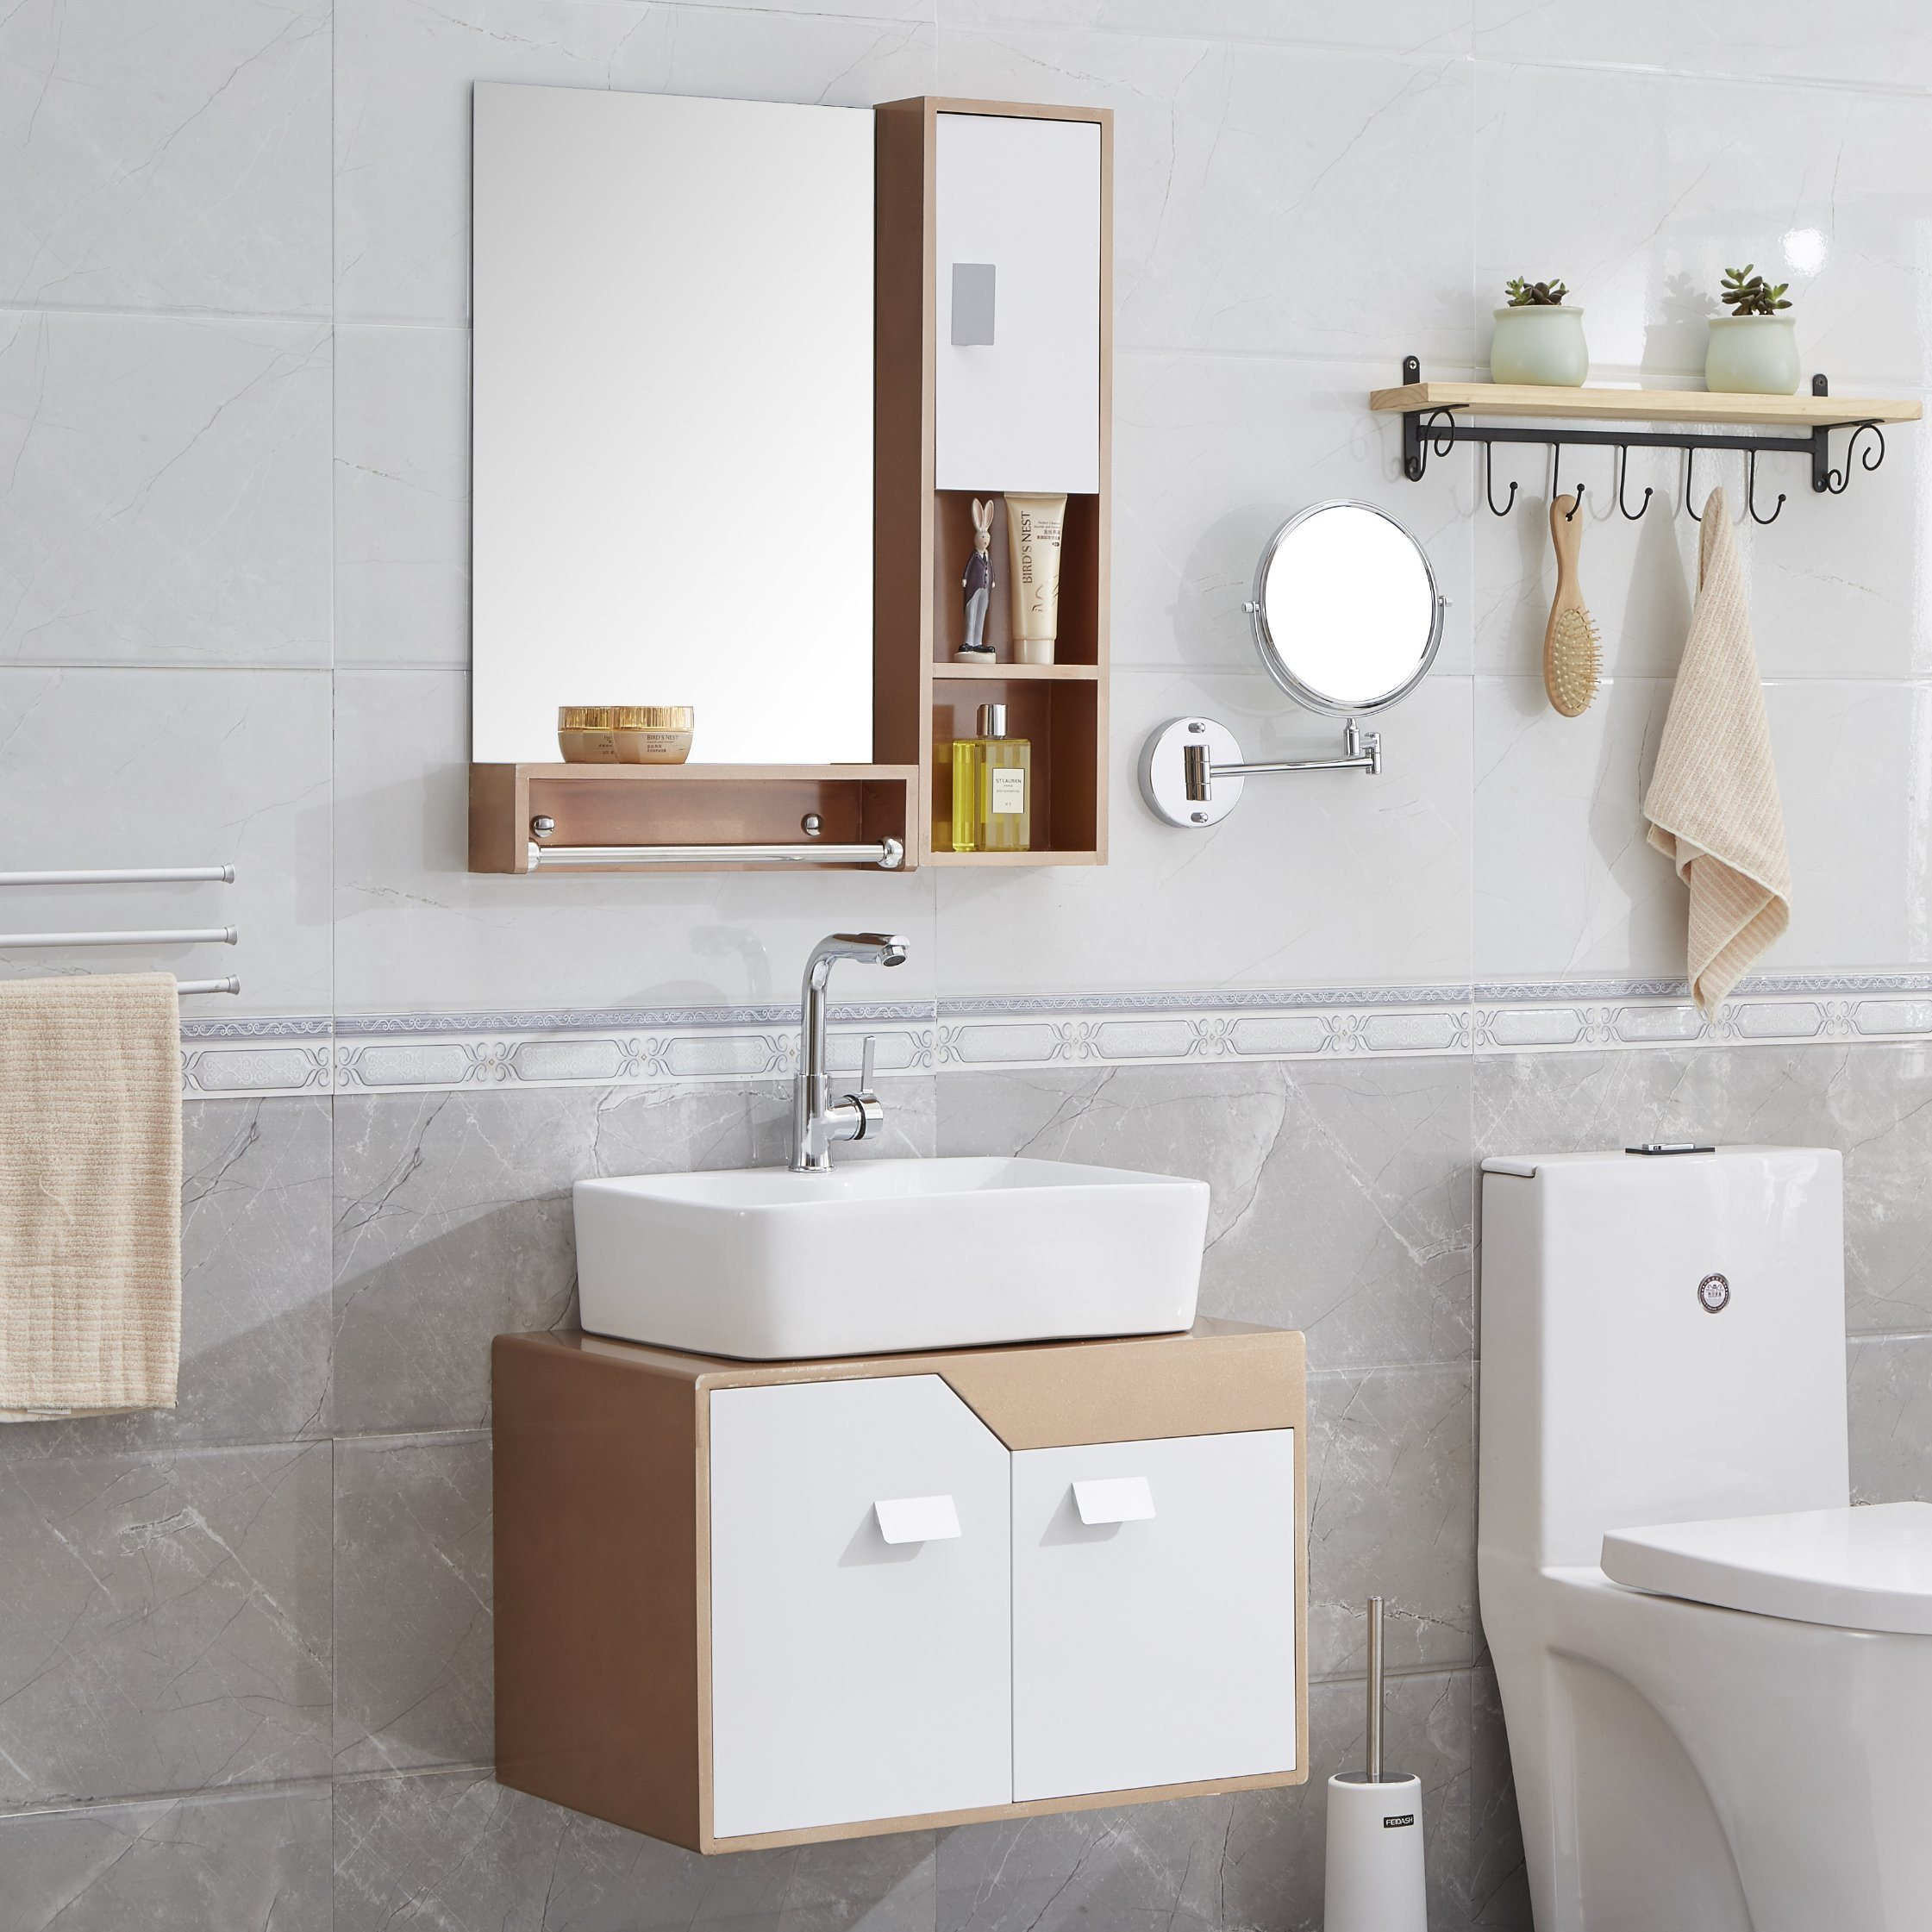 China Modern Brief Wall Mounted Pvc Bathroom Vanity China Bathroom Cabinet Bathroom Furniture